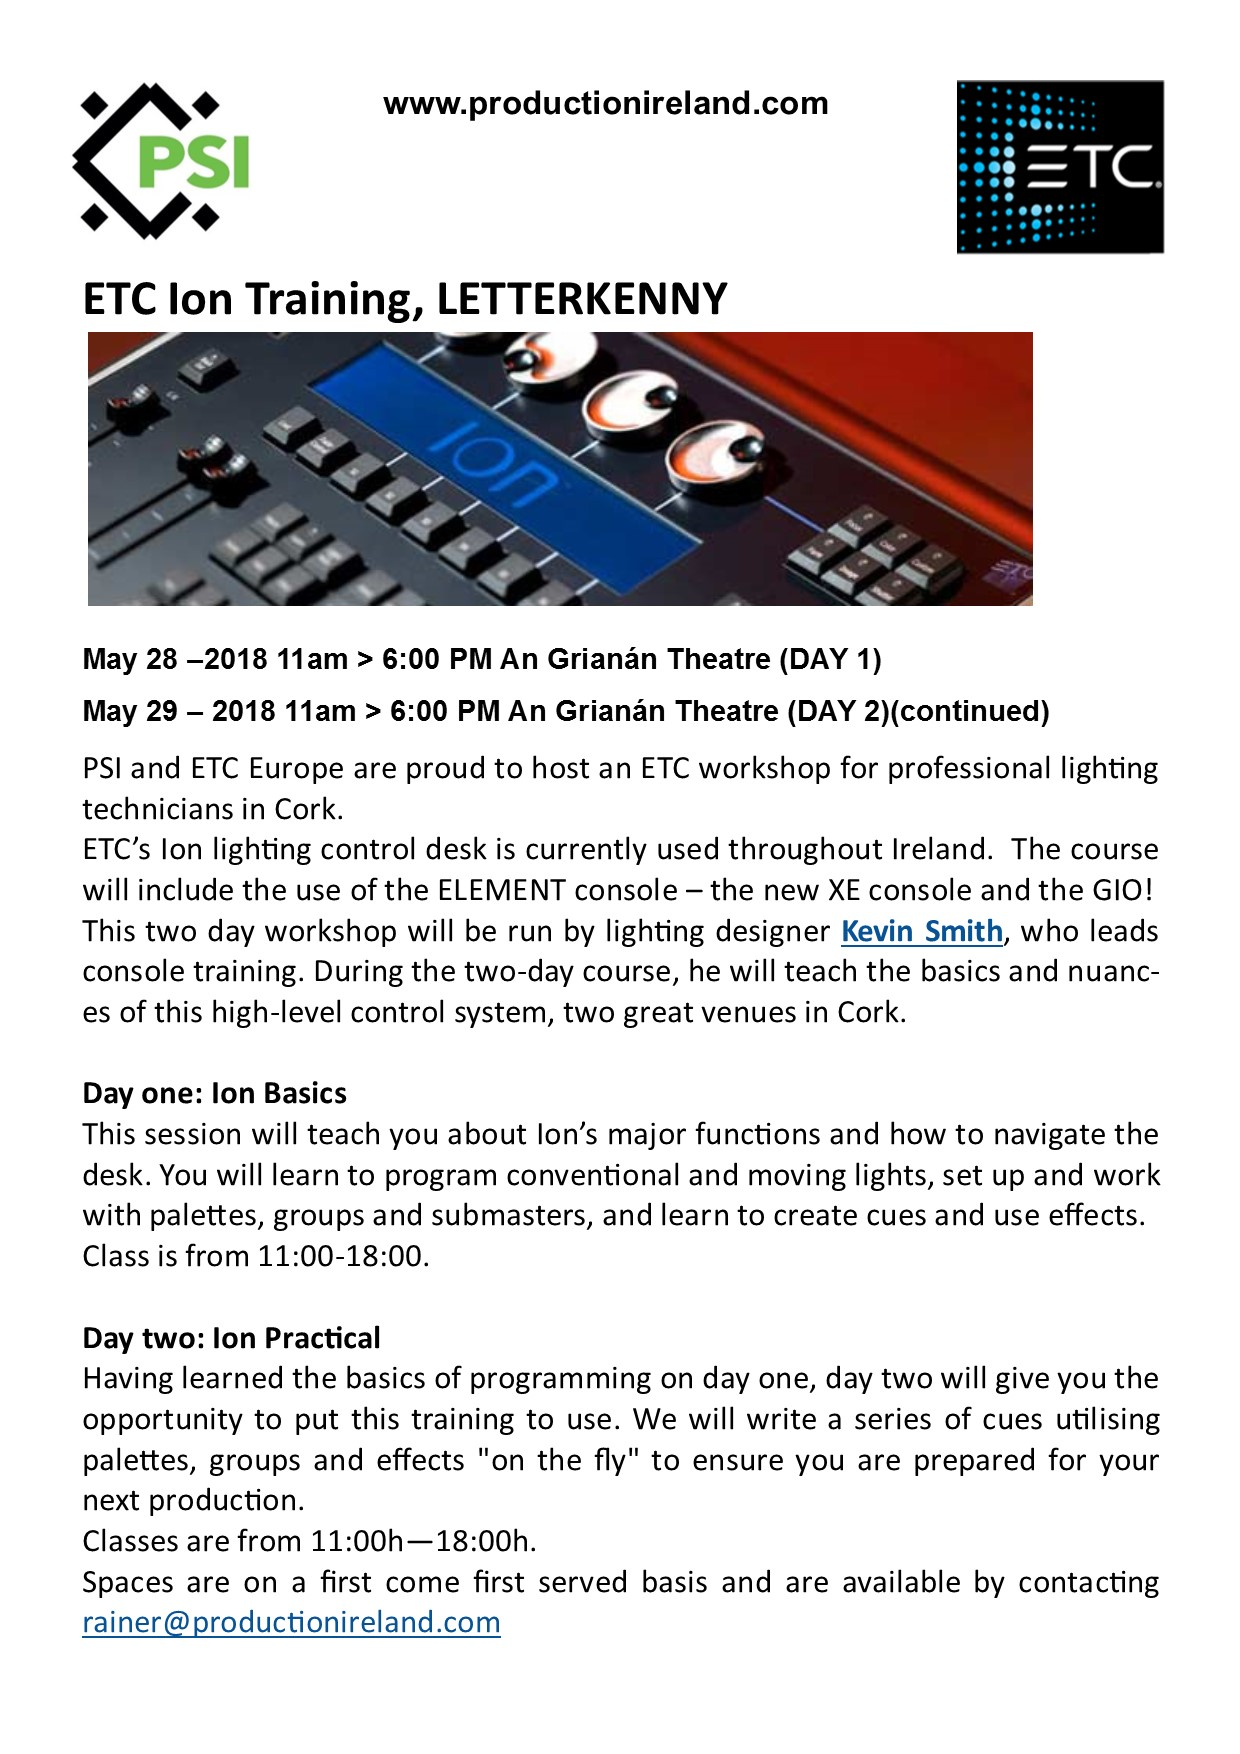 ETC Ion Training in Letterkenny! | Production Services Ireland